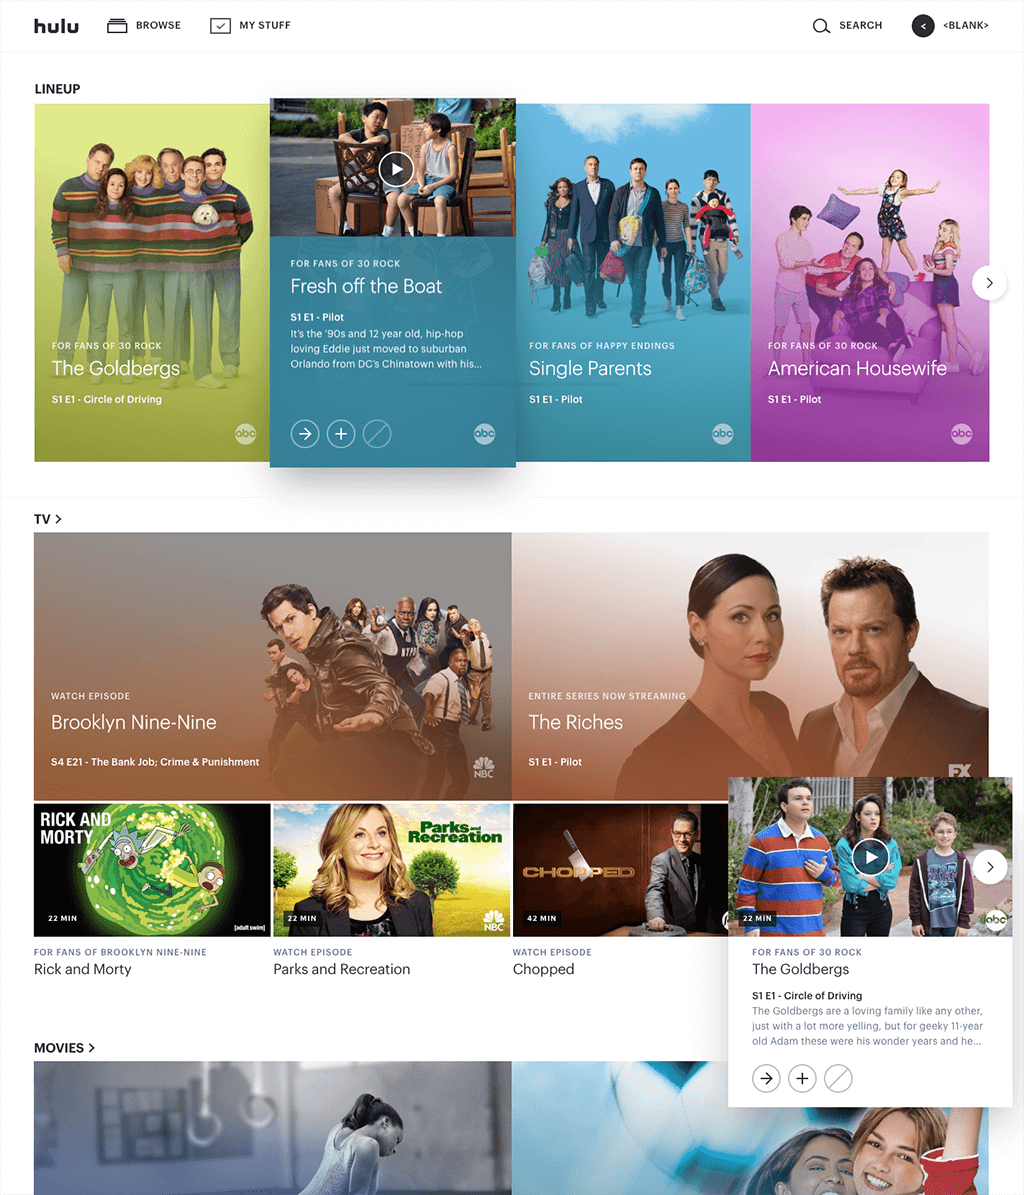 Hulu Website Design With Cards